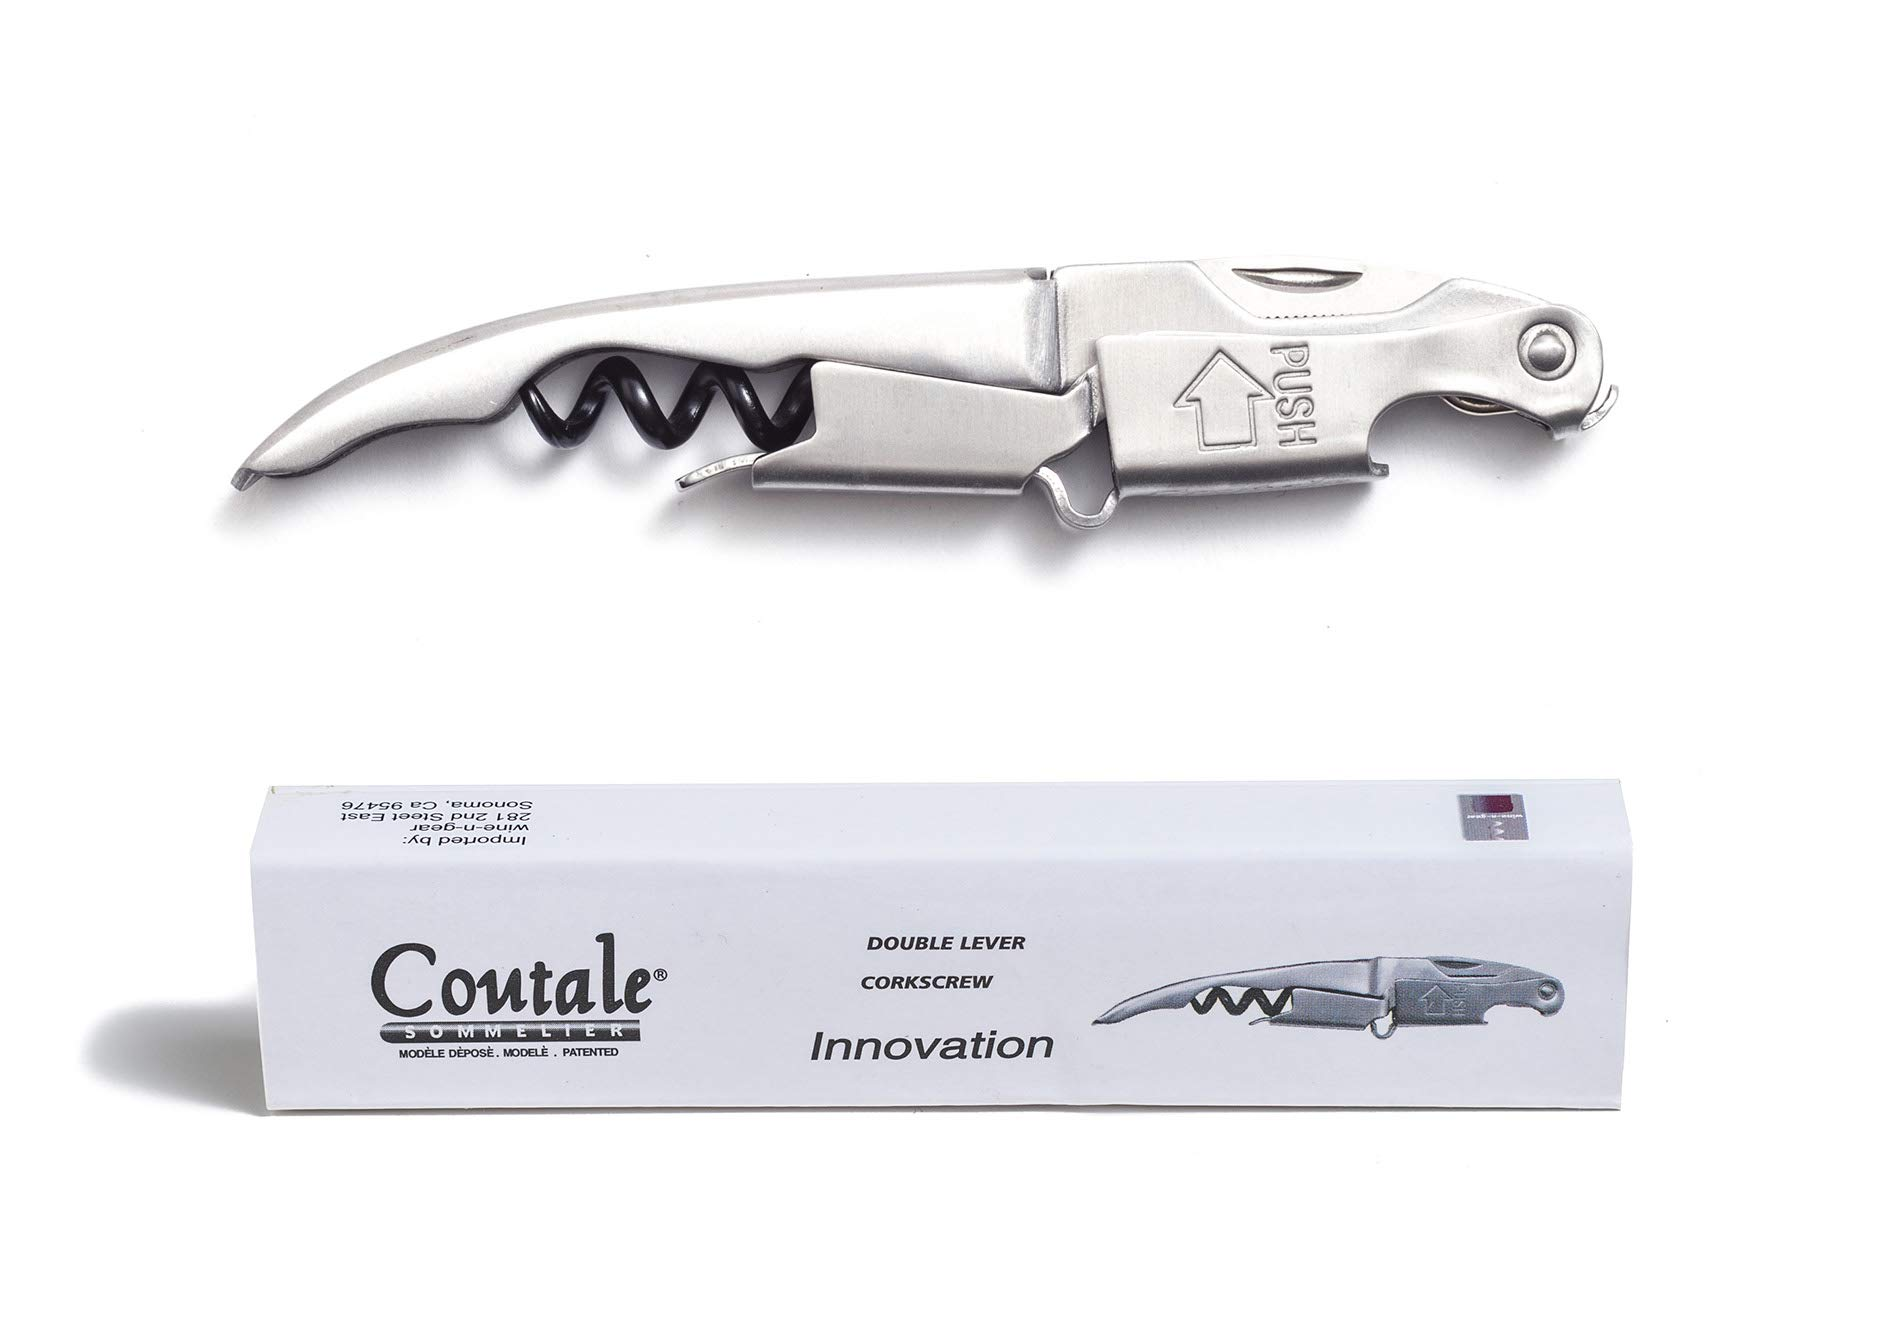 Innovation Stainless Steel By Coutale Sommelier - The French Patented Spring-Loaded Double Lever Waiters Corkscrew and Wine Bottle Opener